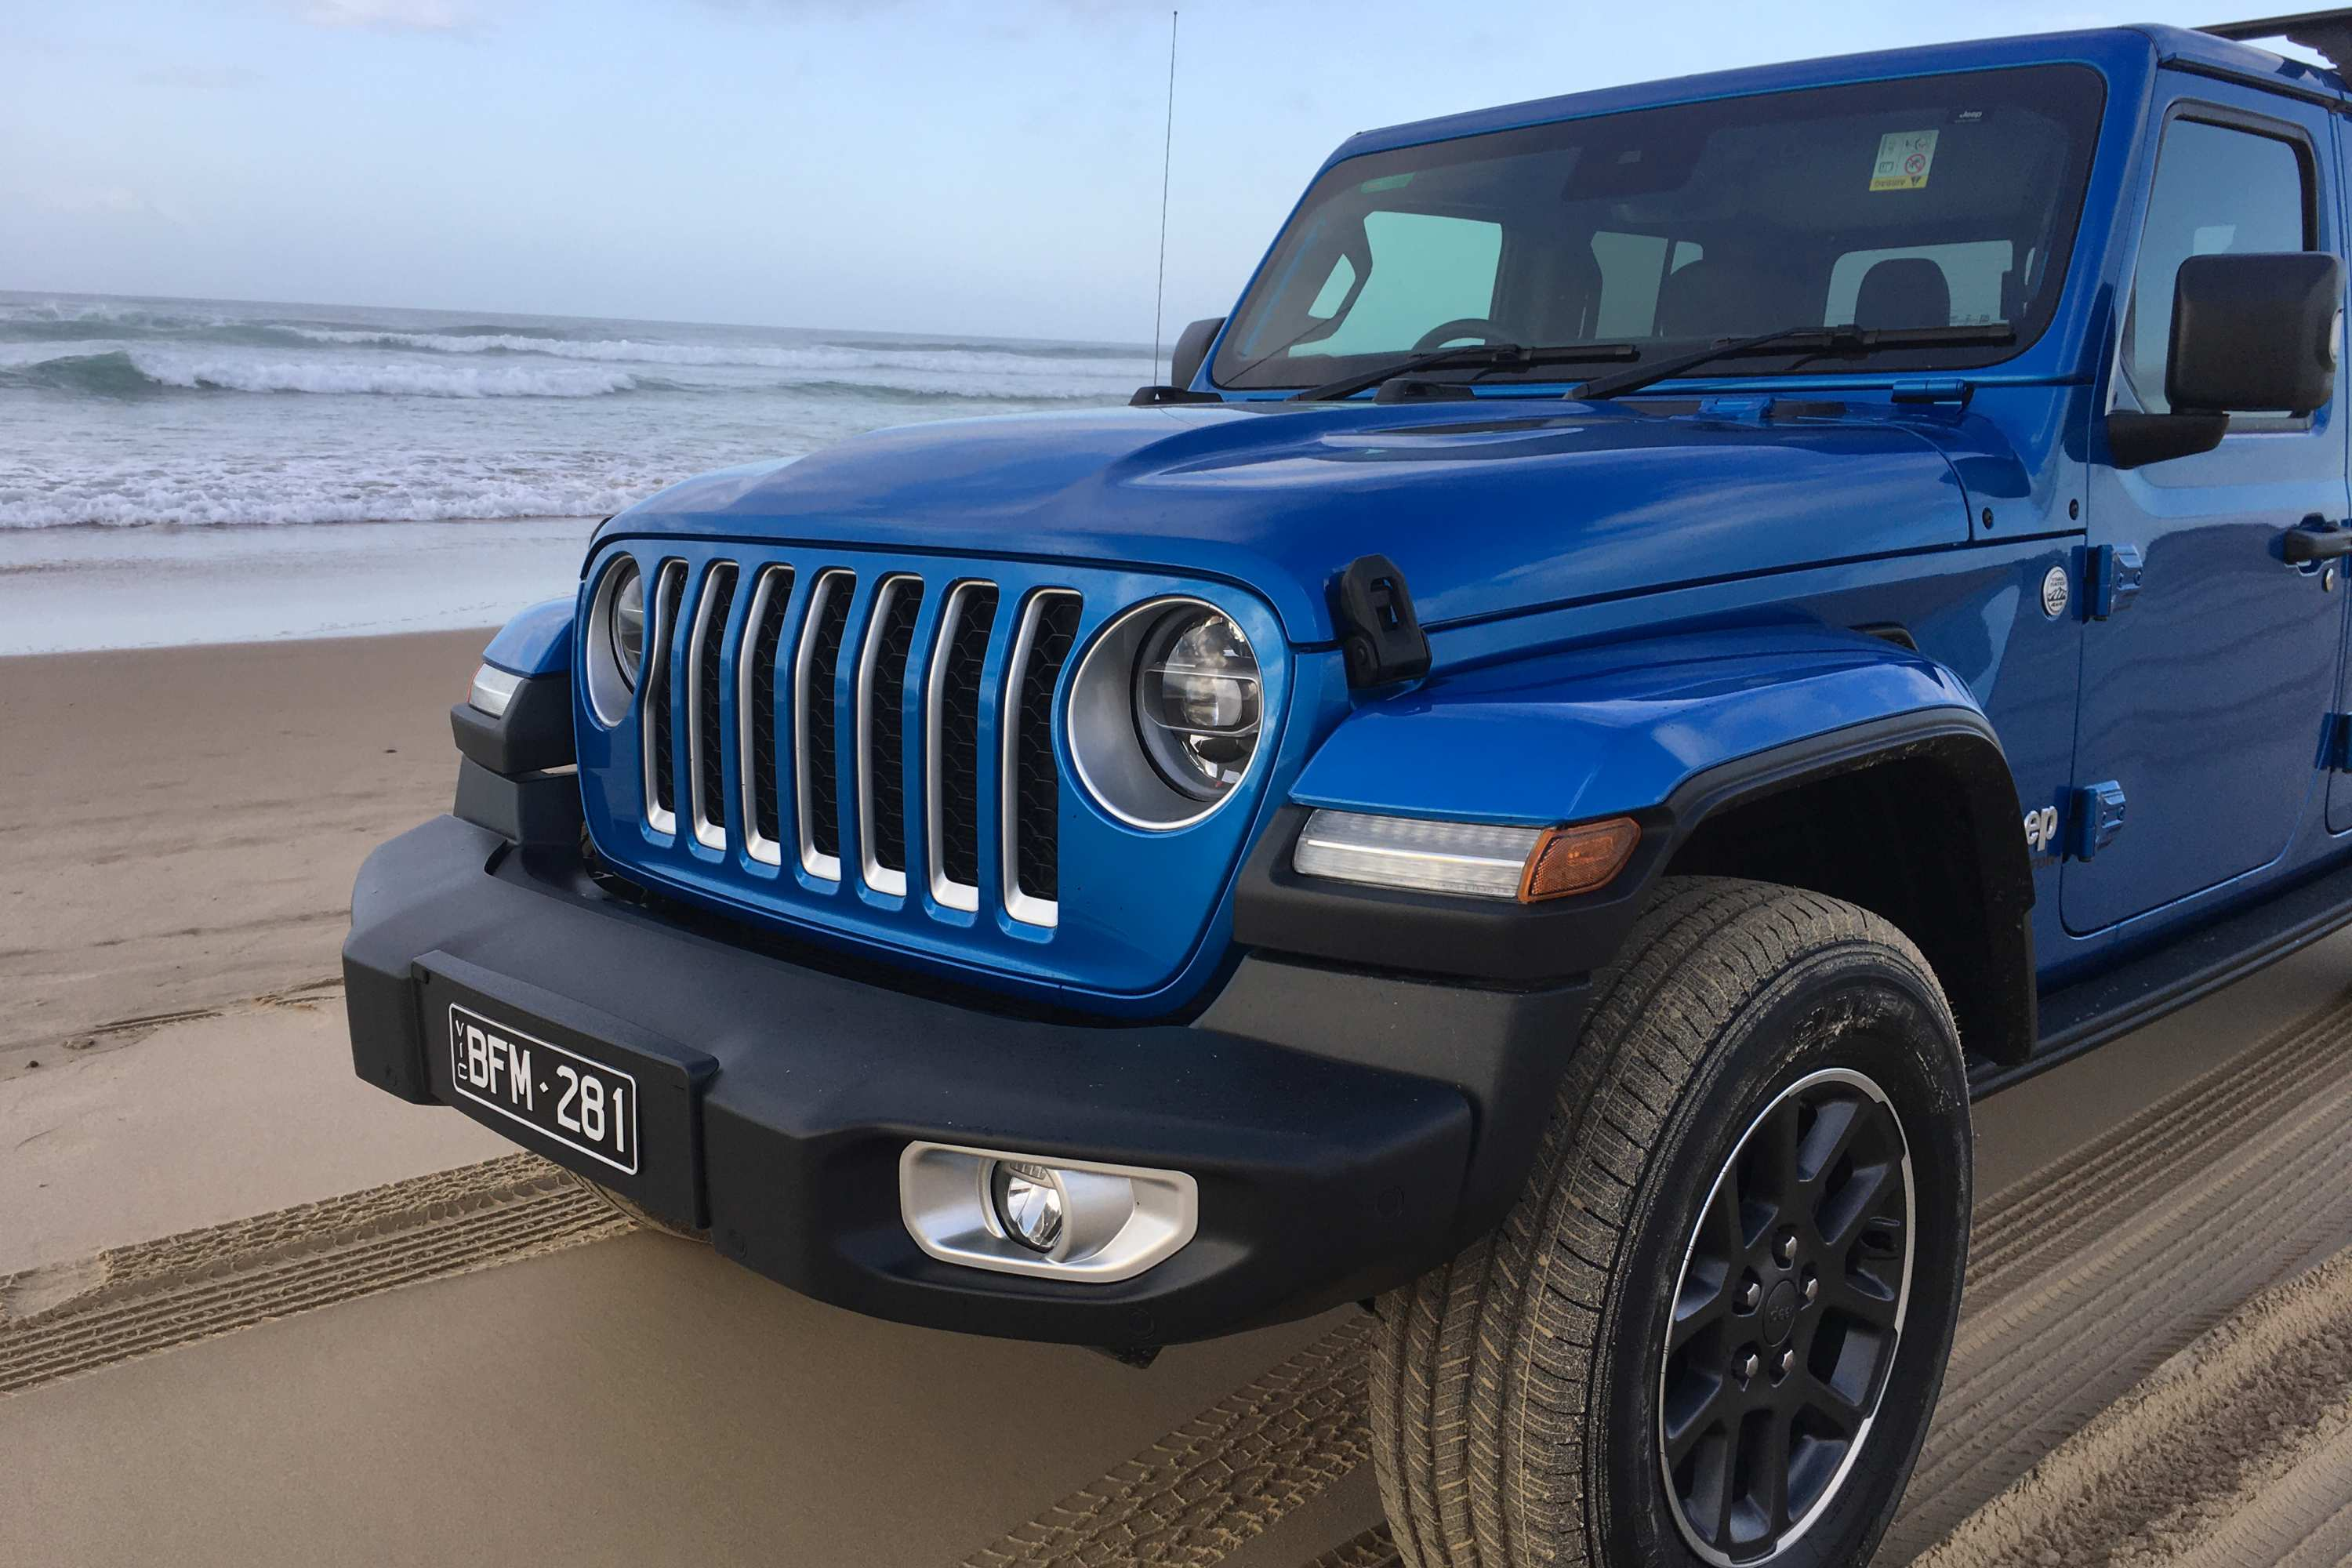 Jeep Gladiator Overland 4WD Ute grill 2